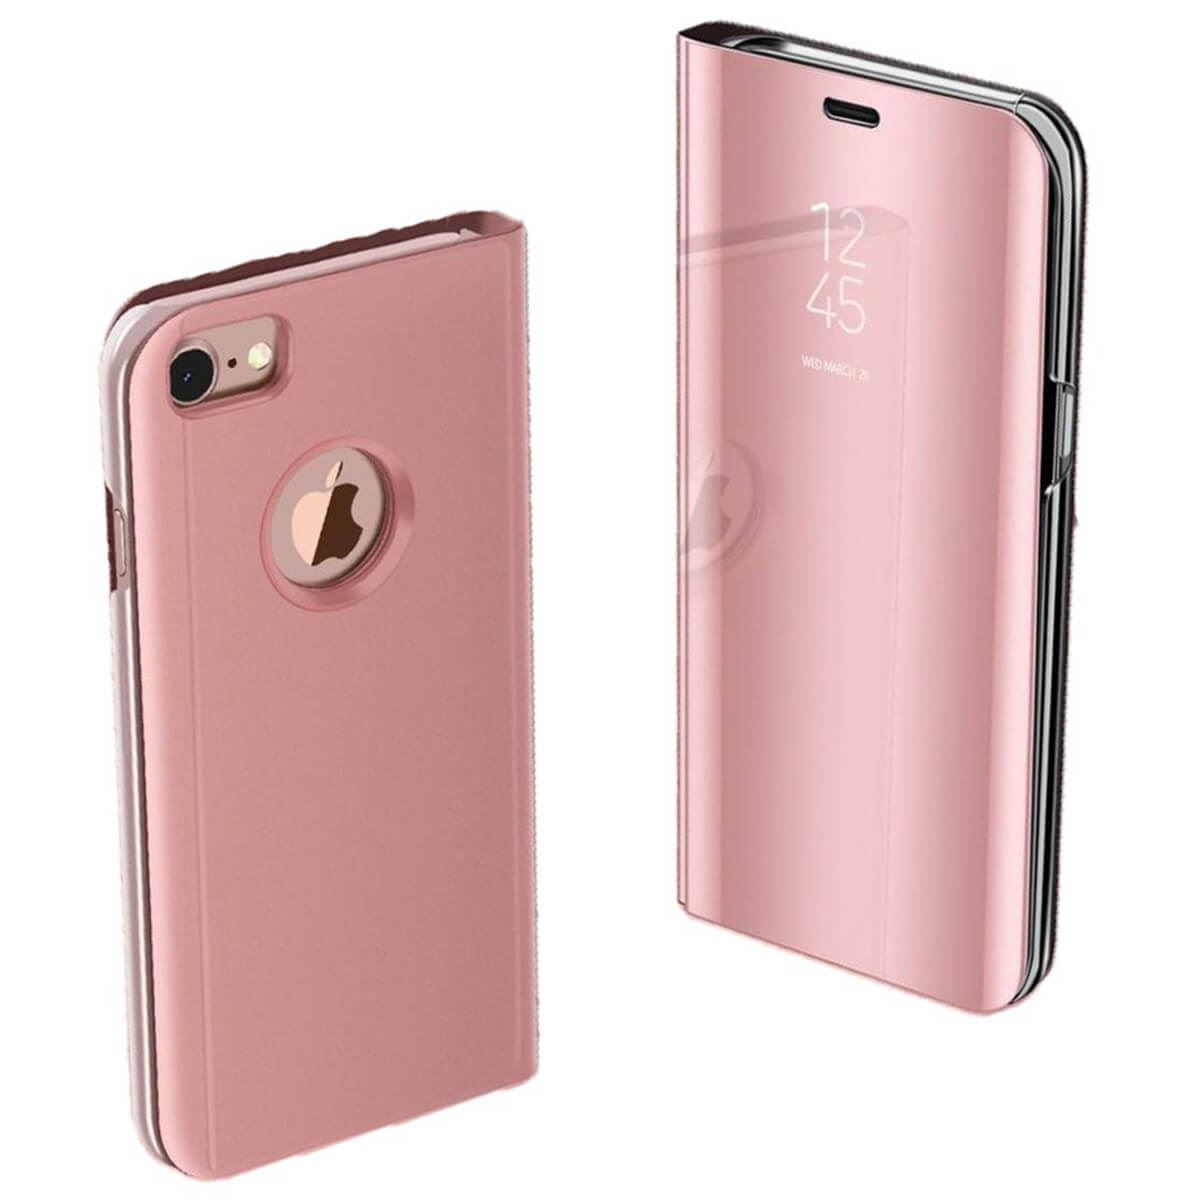 Apple-iPhone-6-6s-7-8-X-Plus-Smart-View-Mirror-Leather-Flip-Stand-Case-Cover thumbnail 16